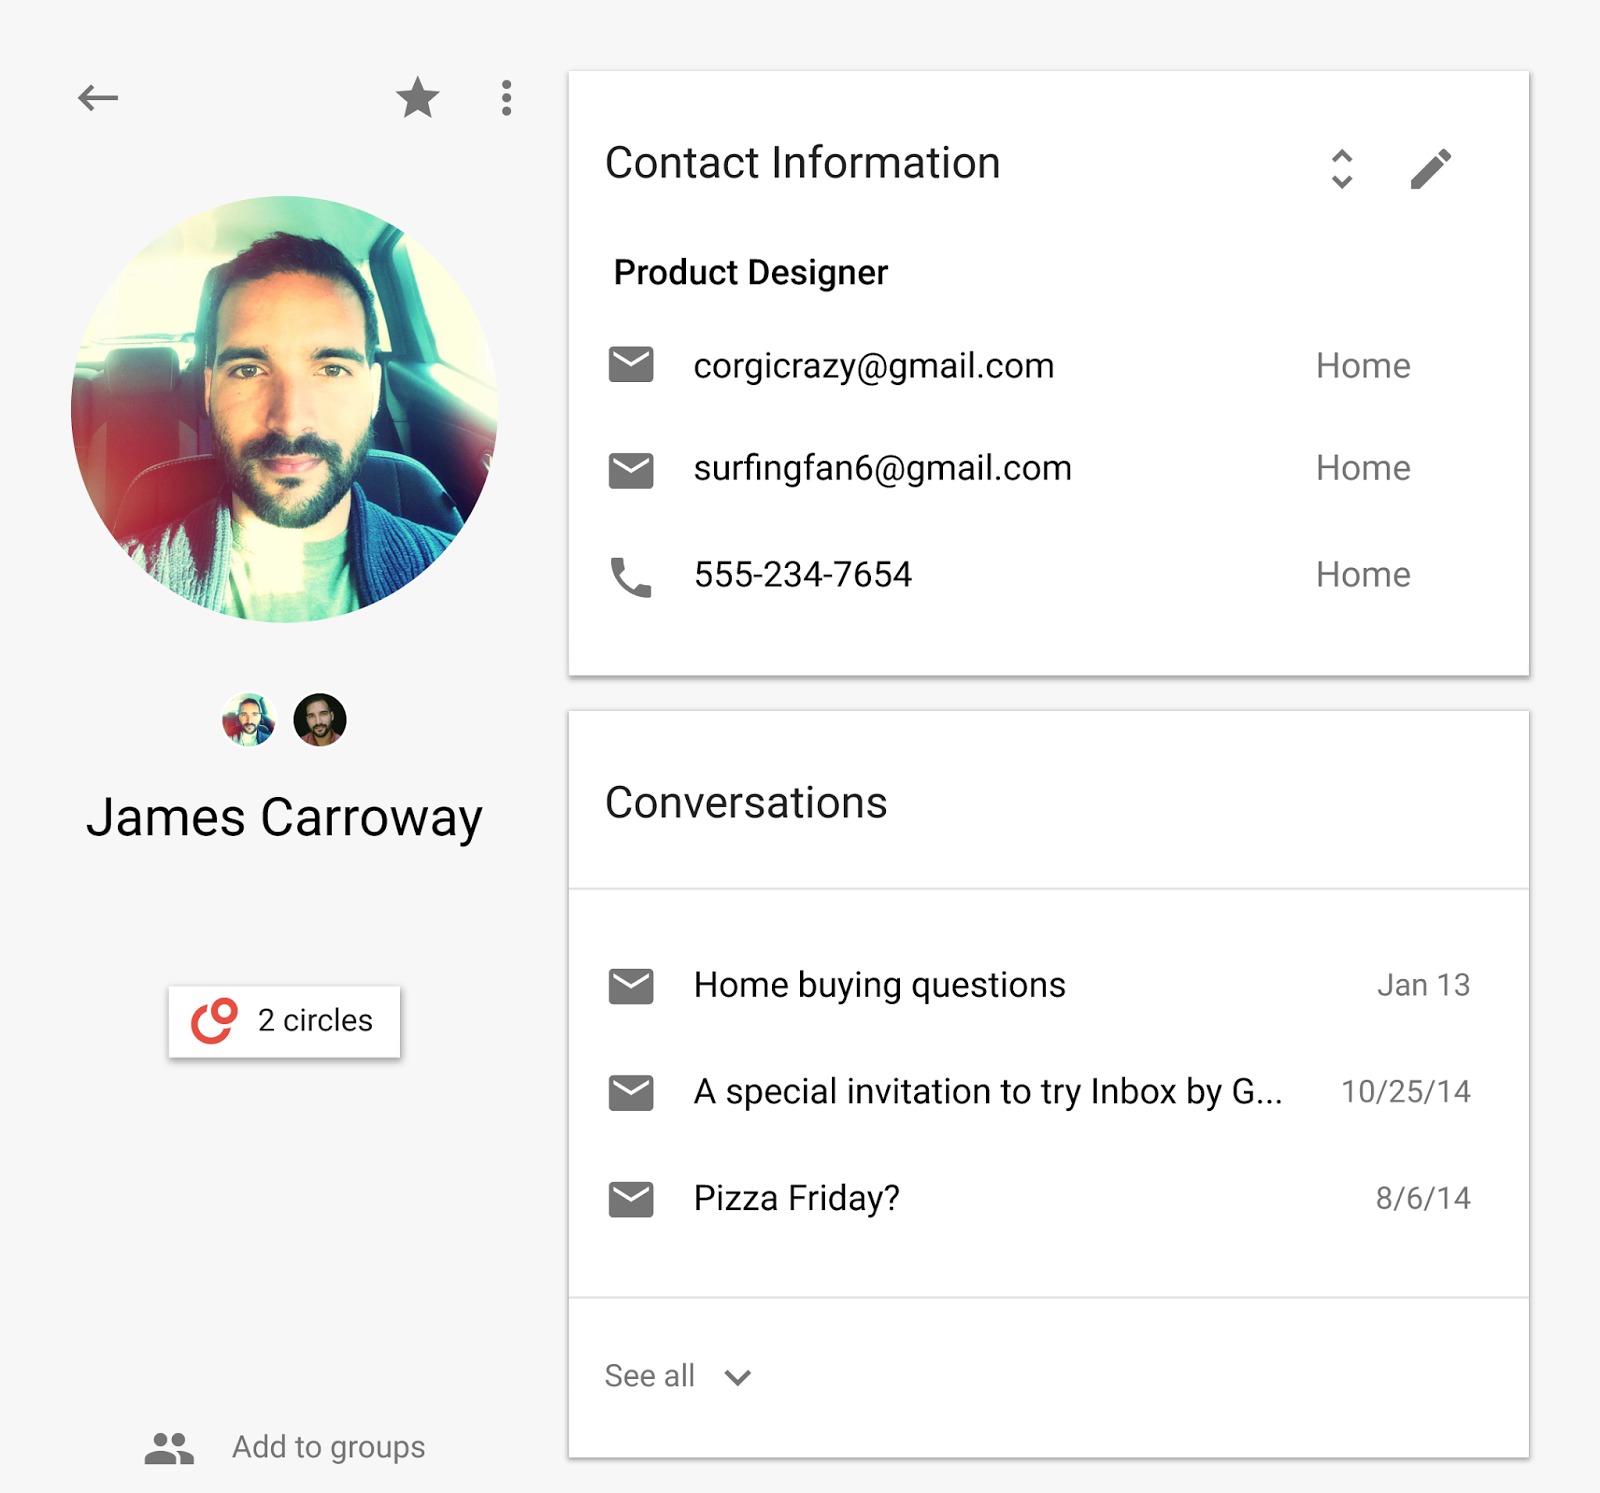 Google Contacts Material Design preview 004